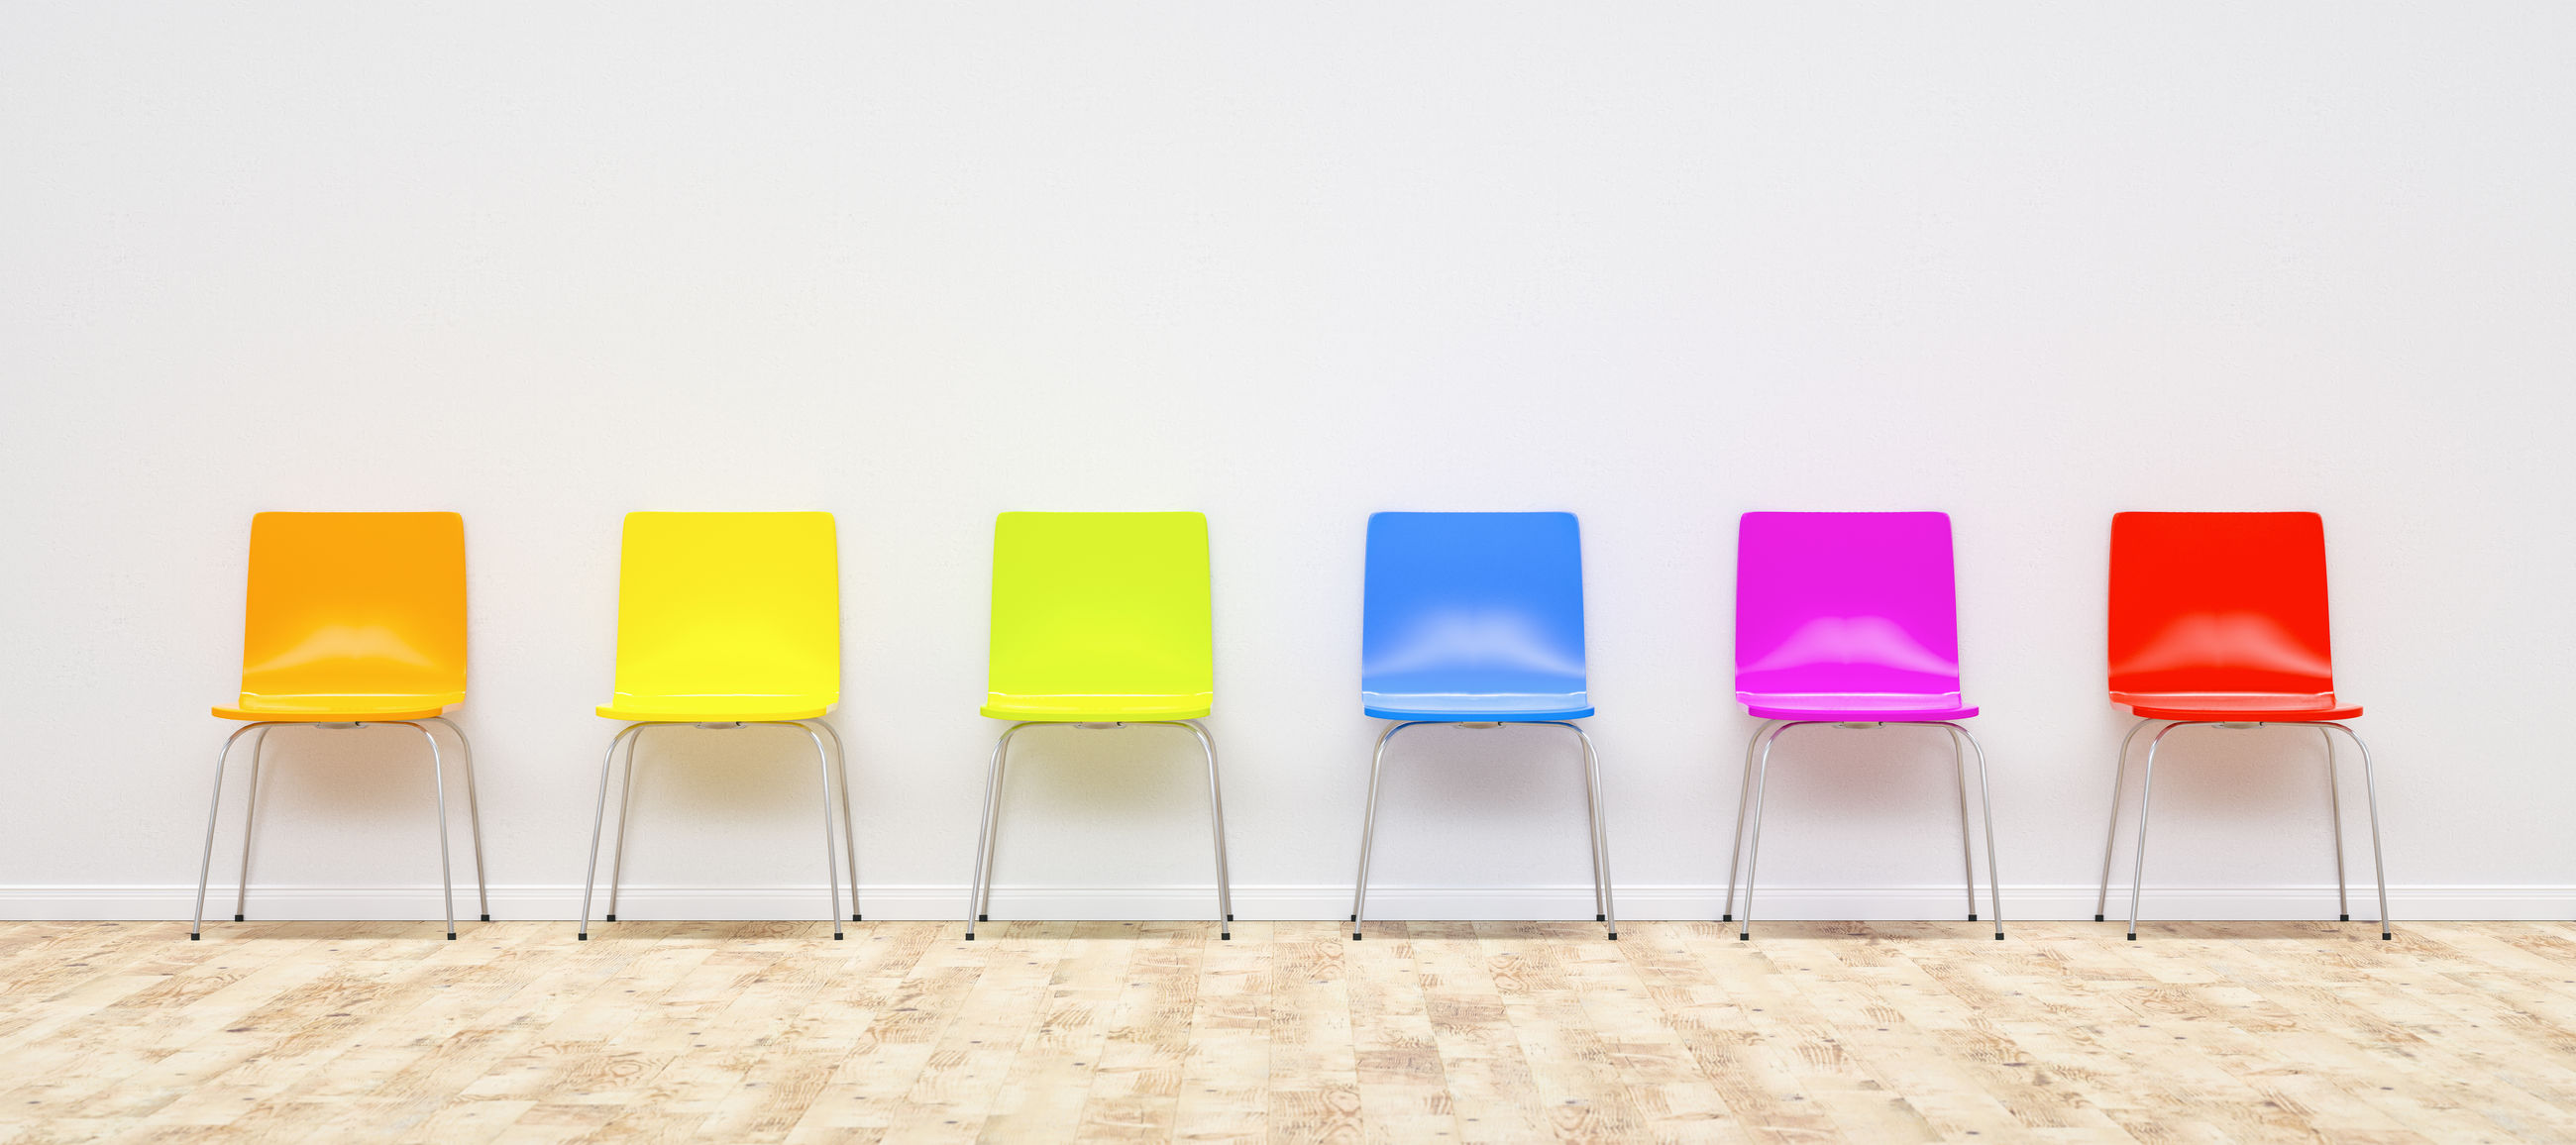 Colorful chairs against wall